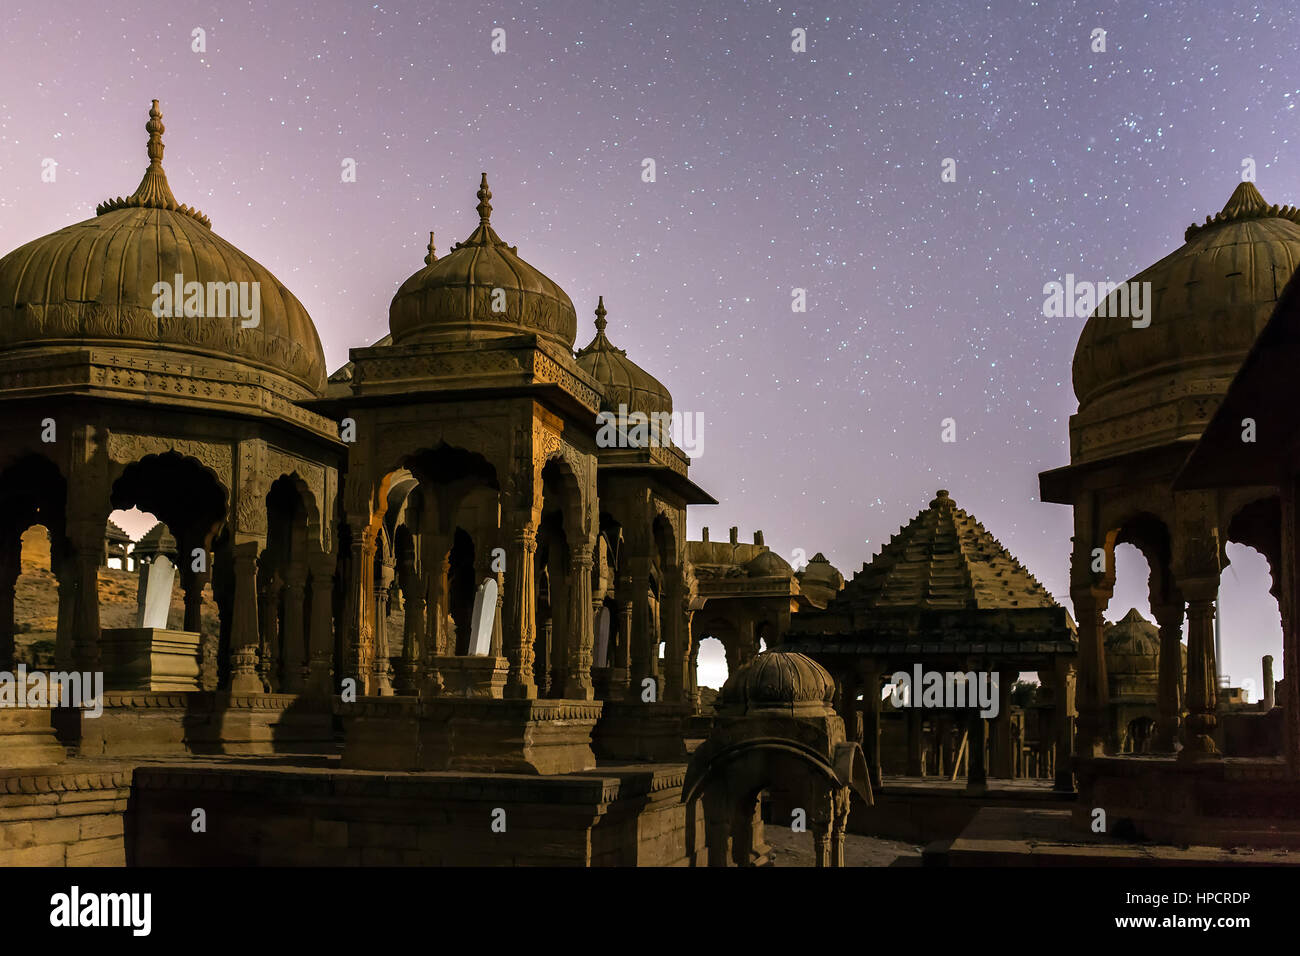 The royal cenotaphs of historic rulers, also known as Jaisalmer Chhatris, at Bada Bagh in Jaisalmer, Rajasthan, - Stock Image